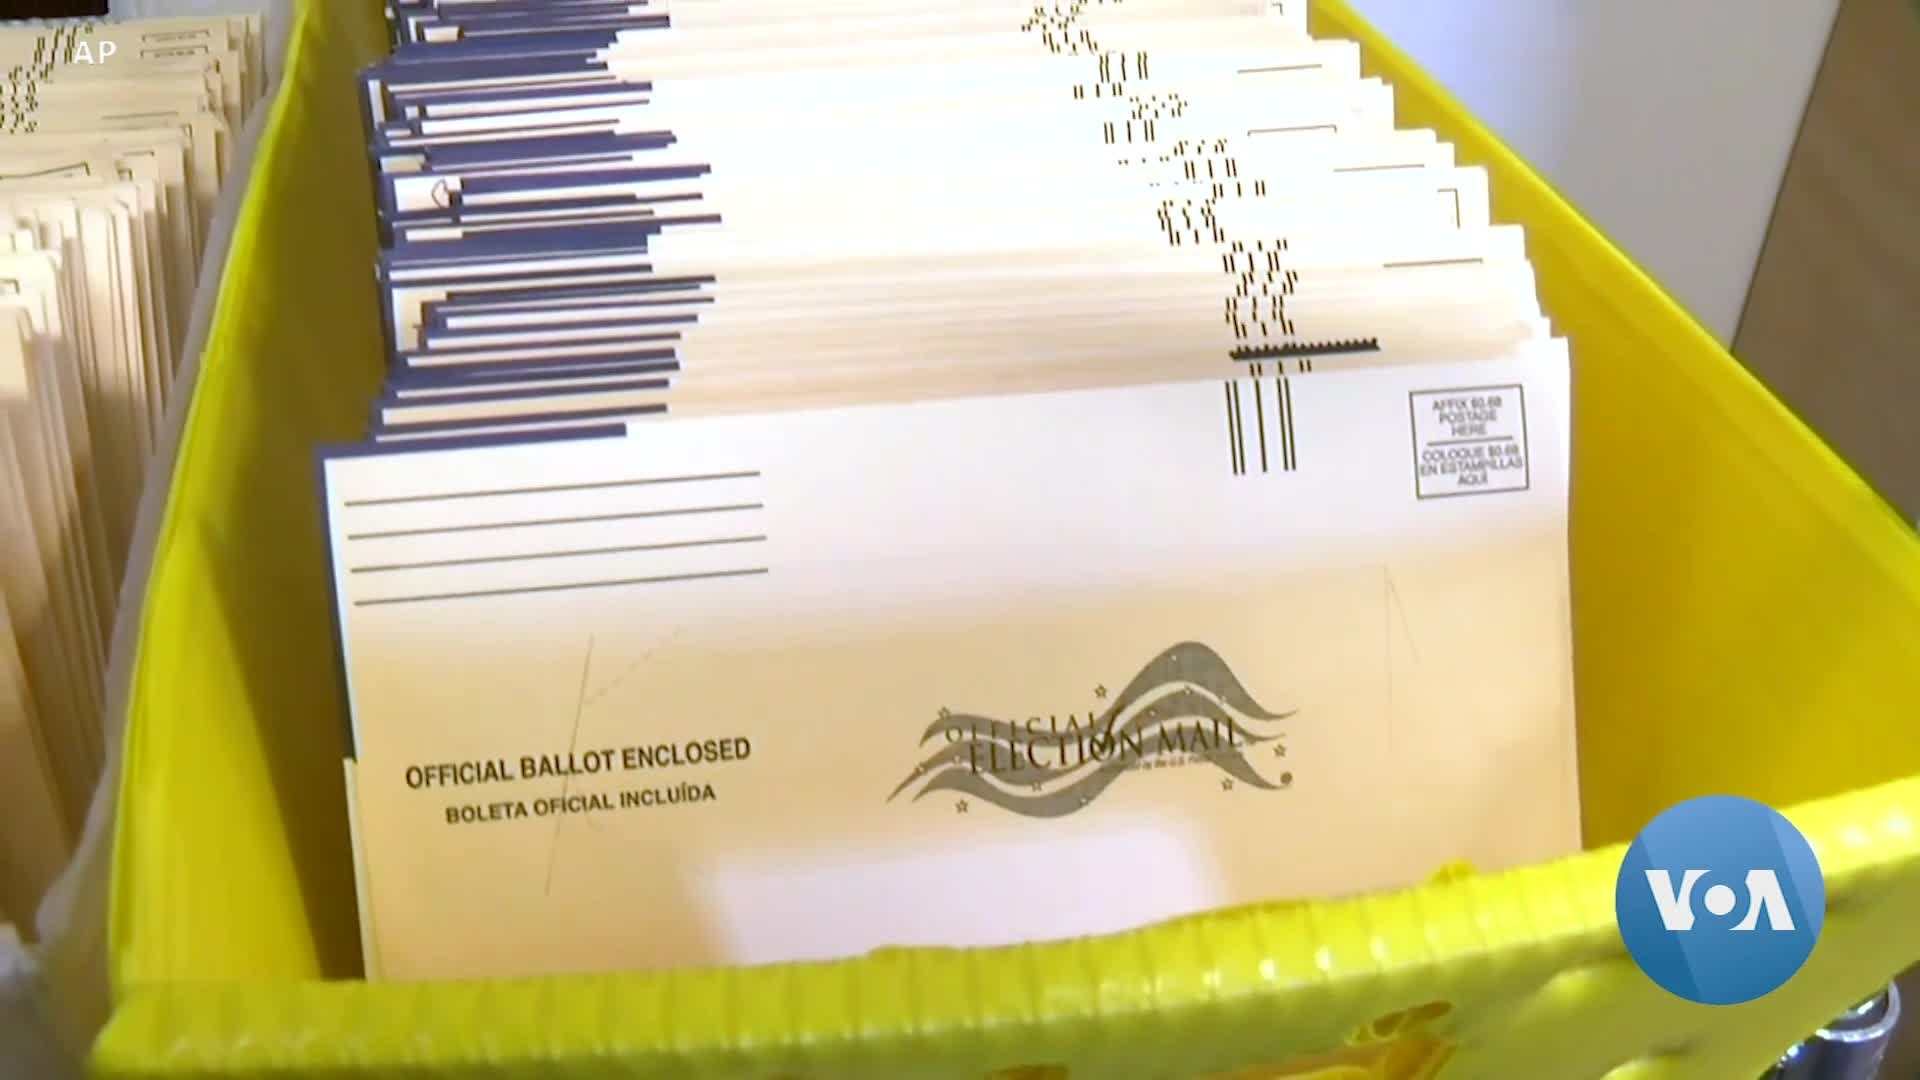 Postal Service Crisis Casts Doubt on Mail-In Voting